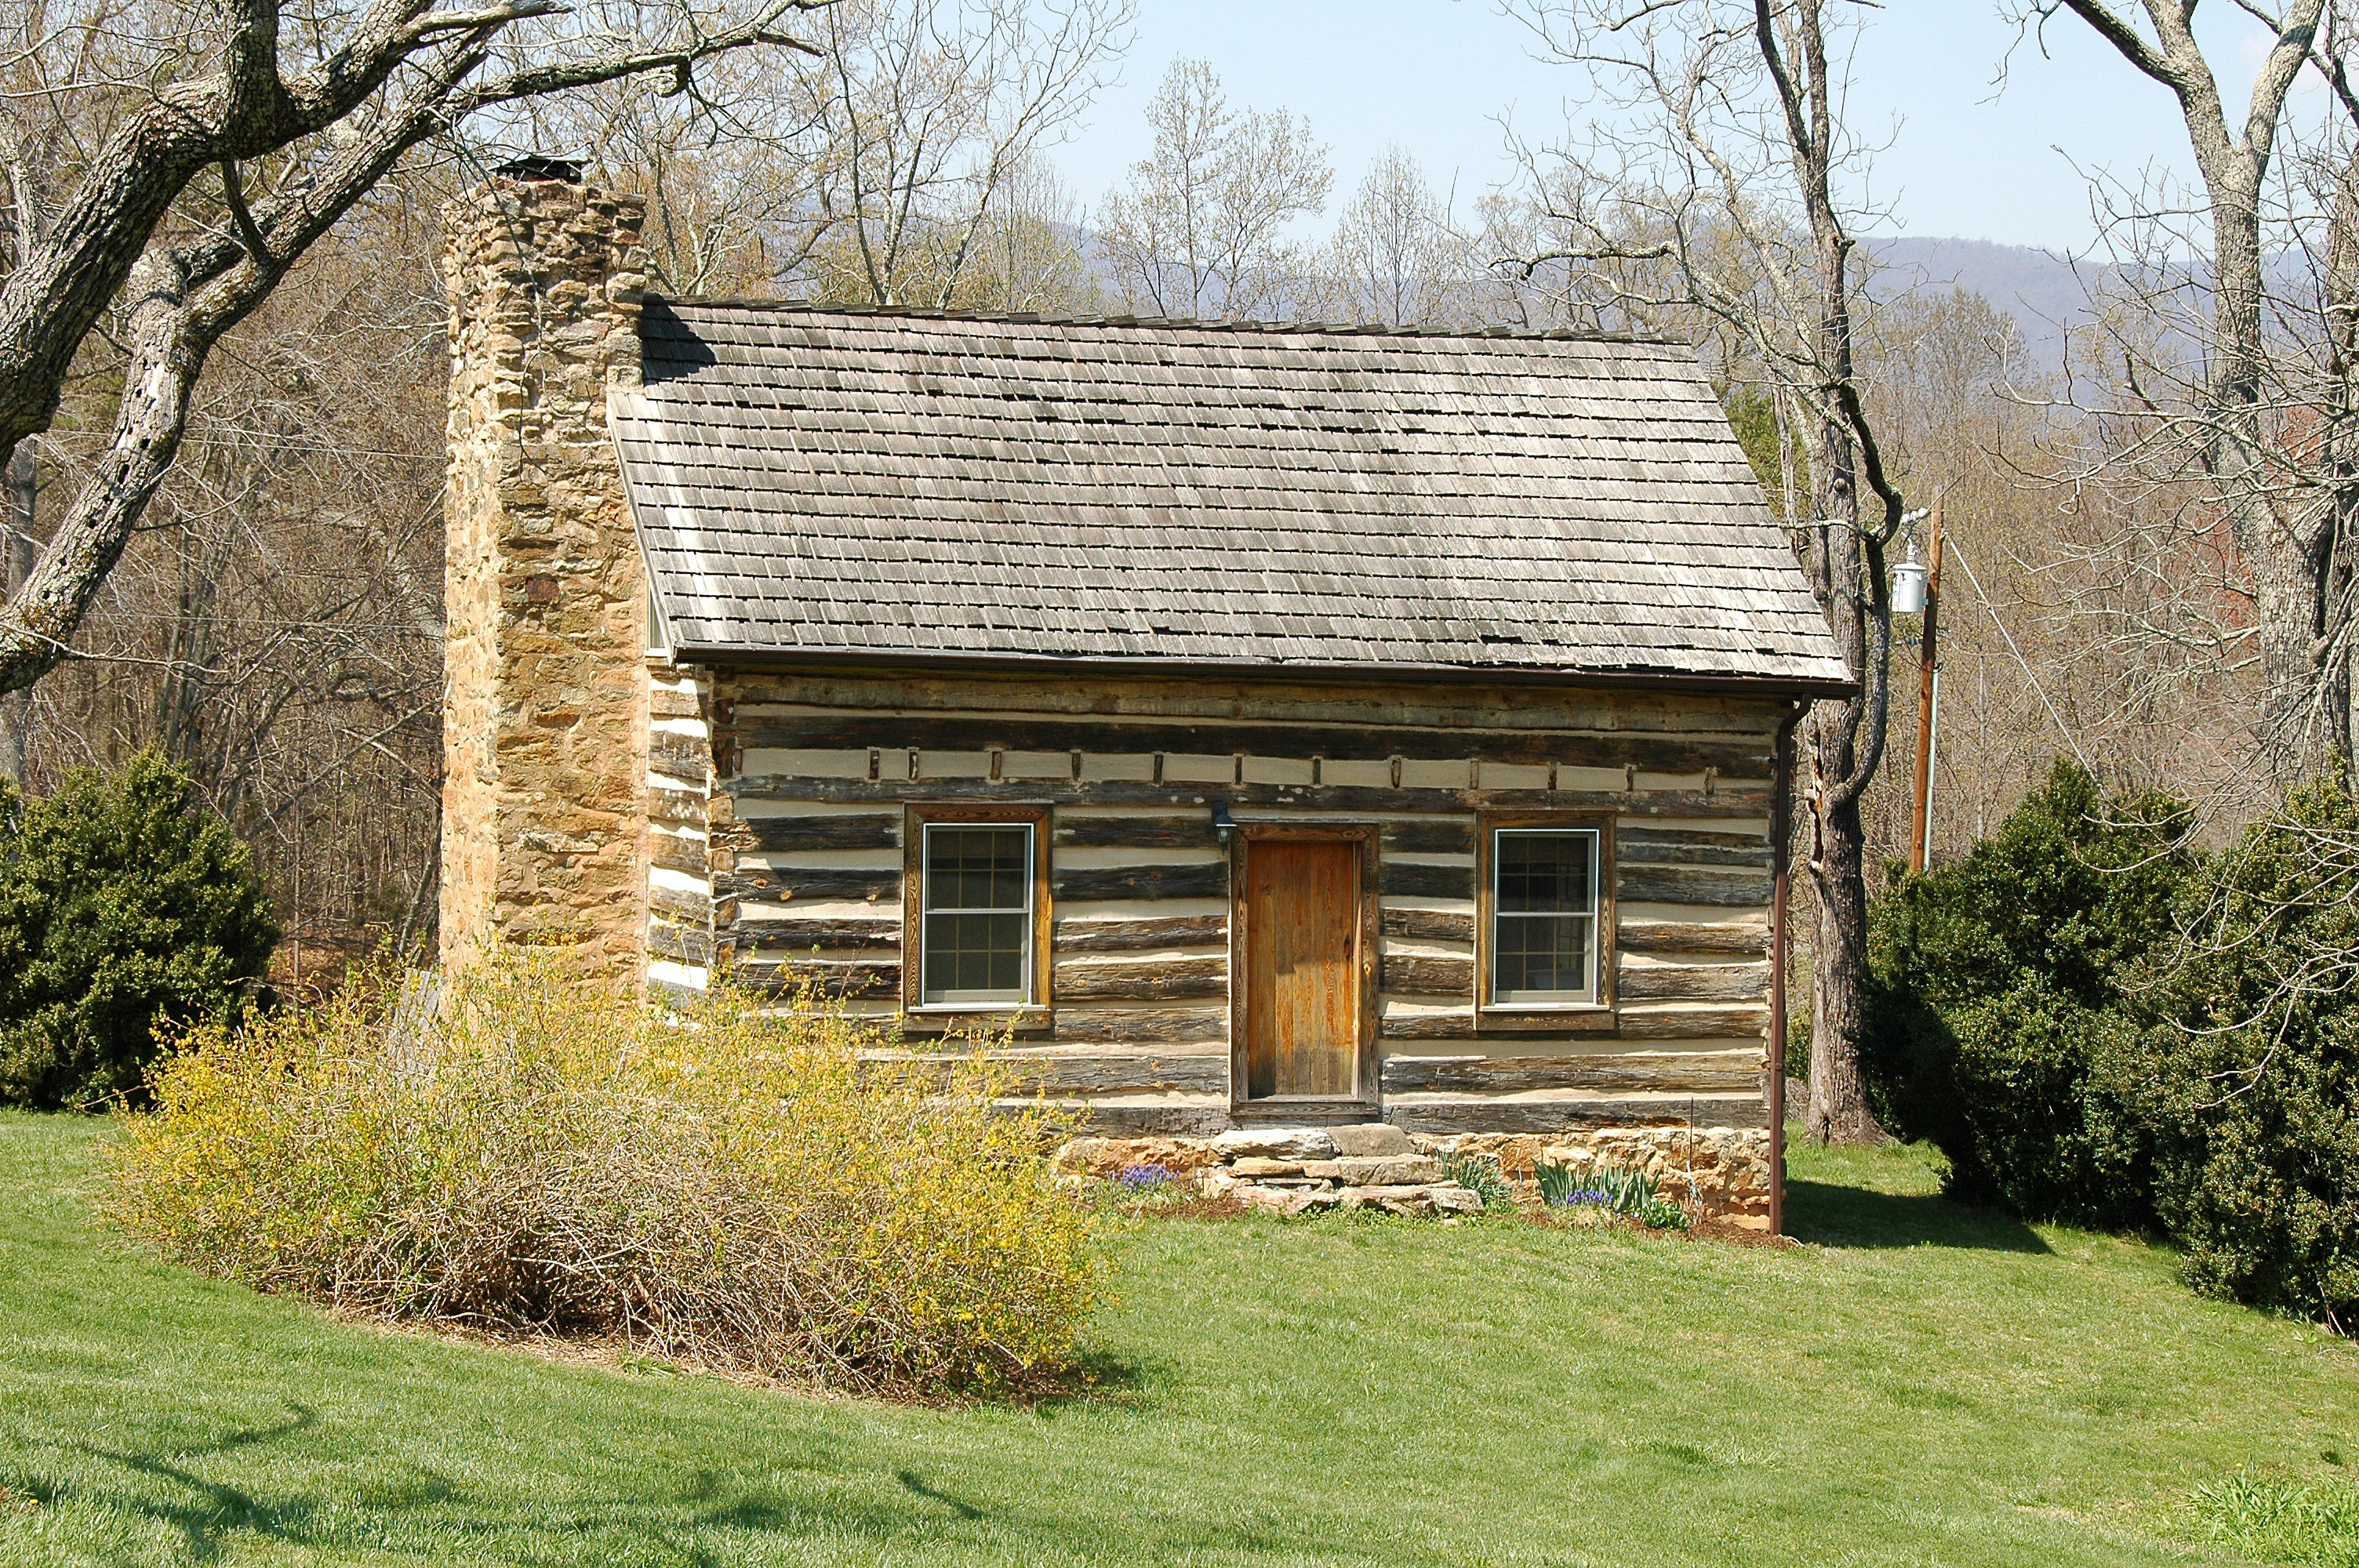 Marvelous photograph of Log Cabin with #947D37 color and 3008x2000 pixels